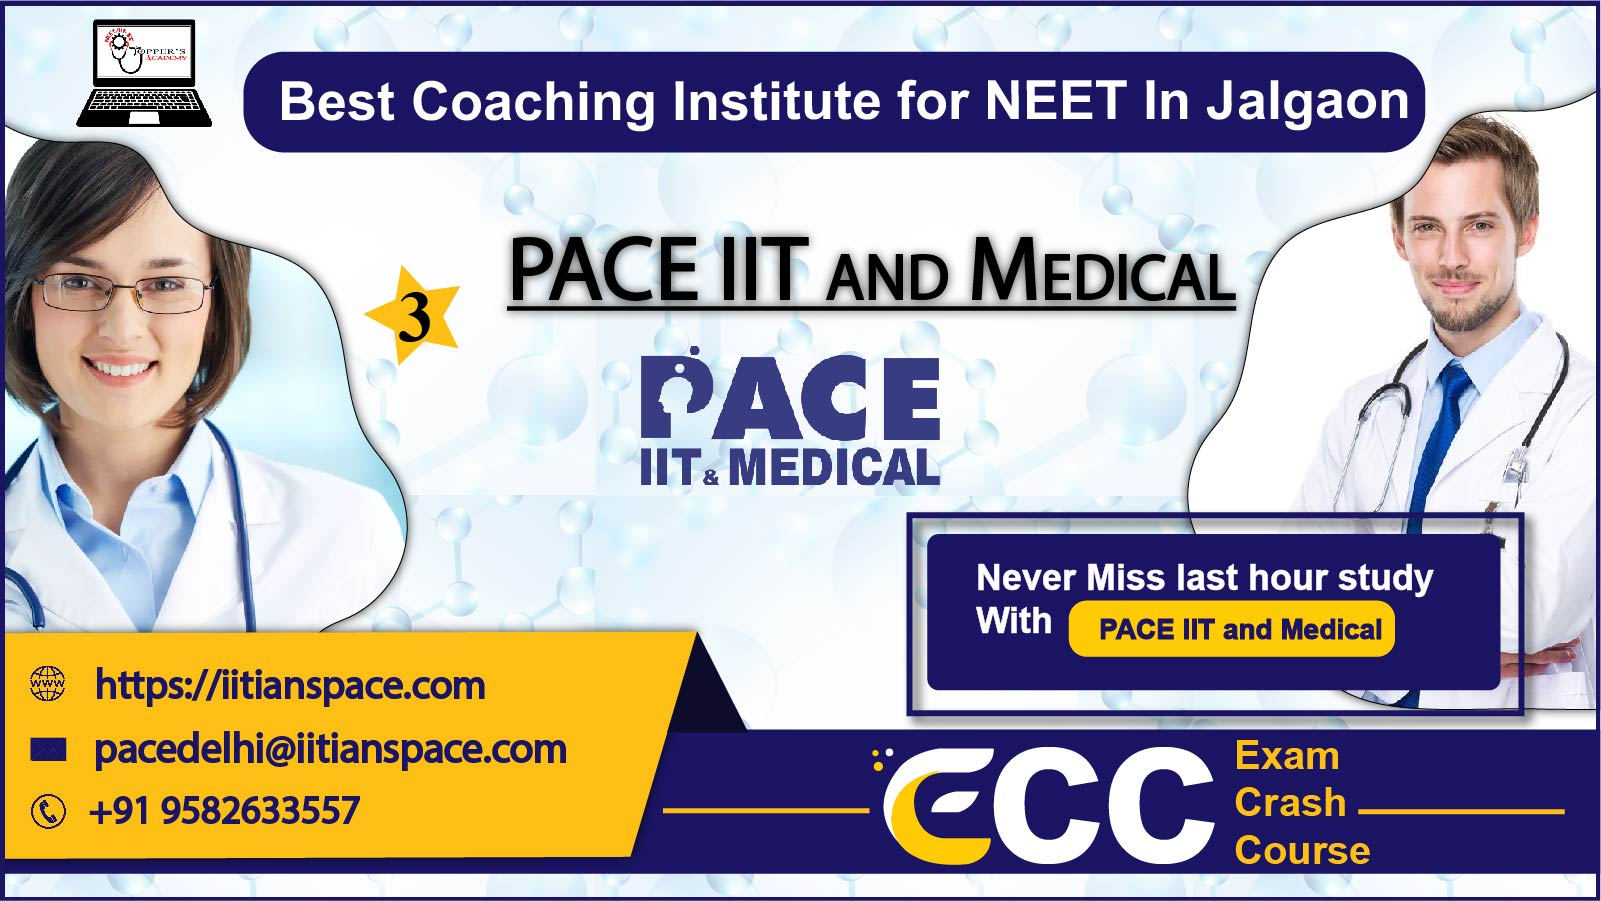 PACE IIT and Medical in Jalgaon